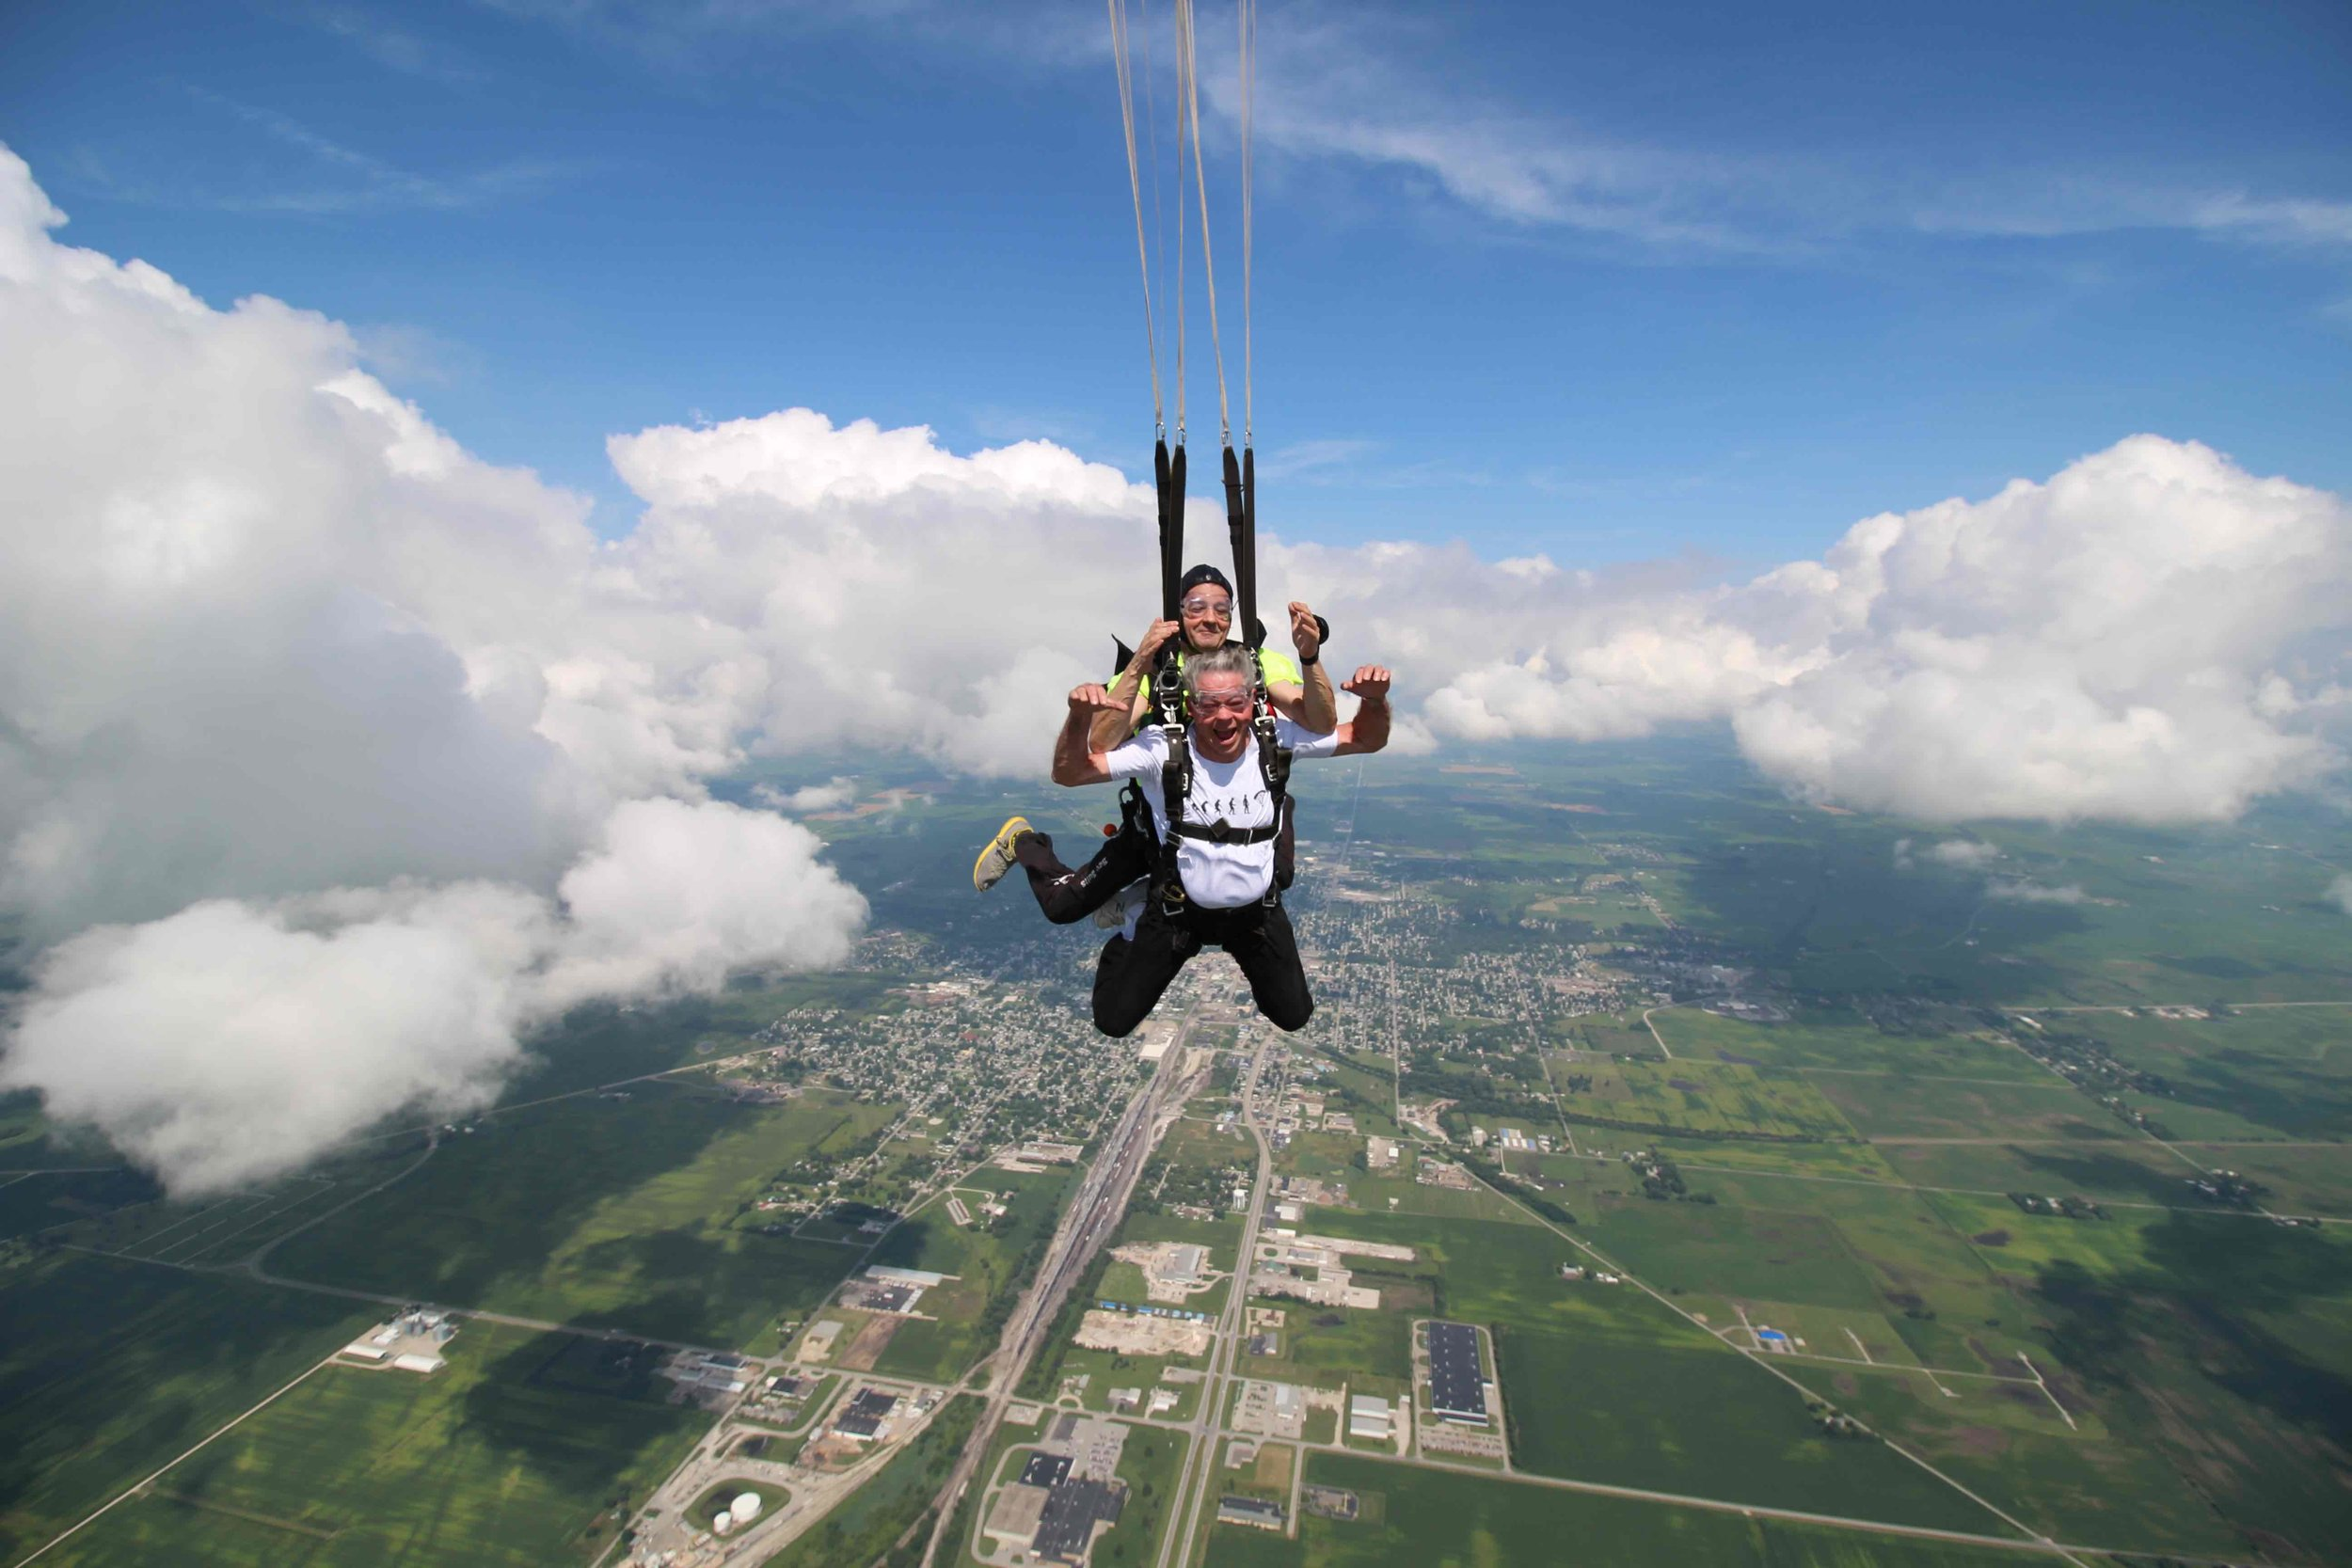 As your parachute opens, you'll feel a bungee-like sensation